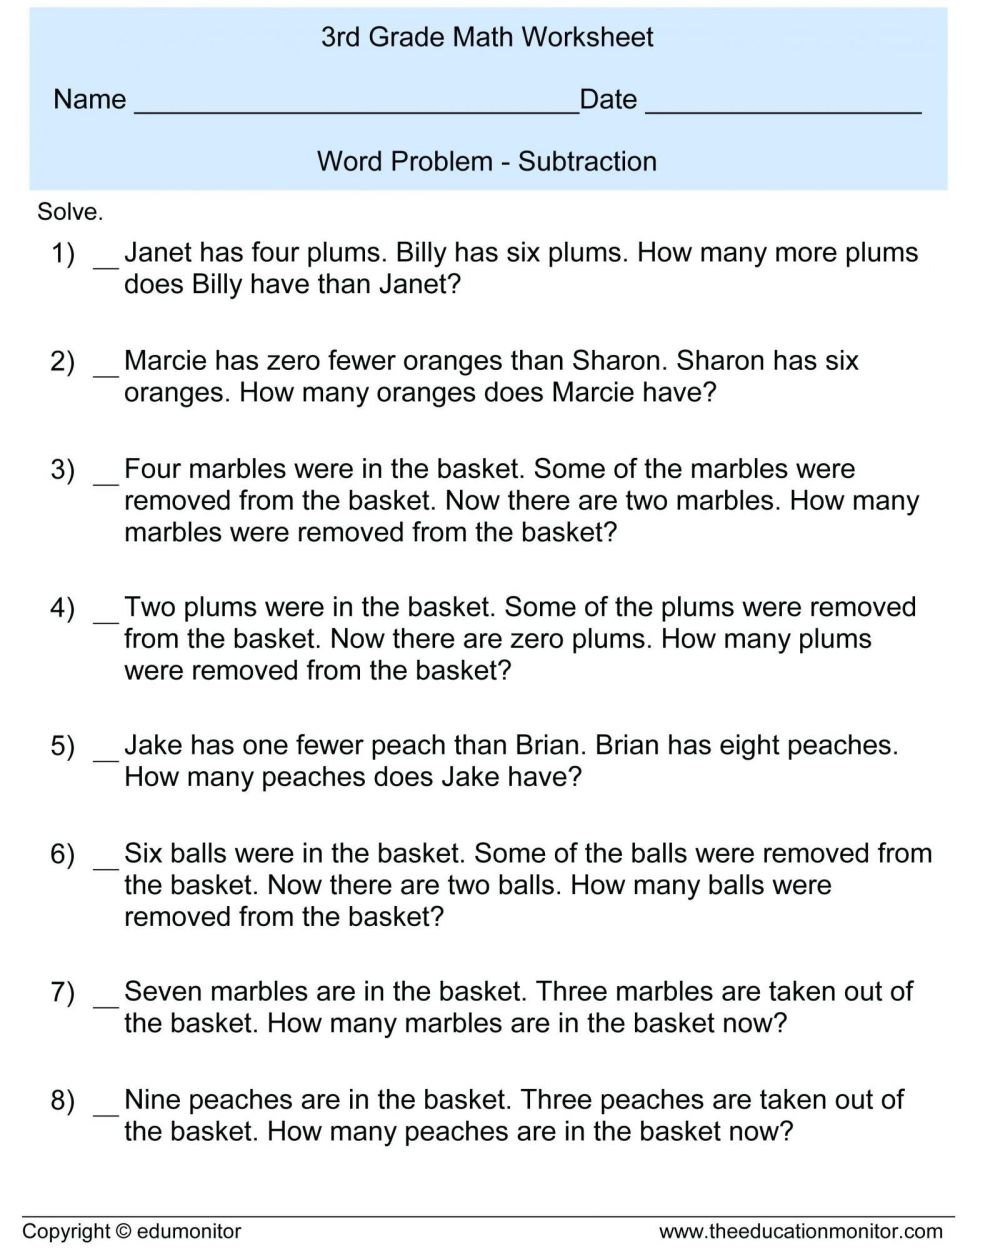 medium resolution of Transition Words Worksheets 6th Grade   Printable Worksheets and Activities  for Teachers